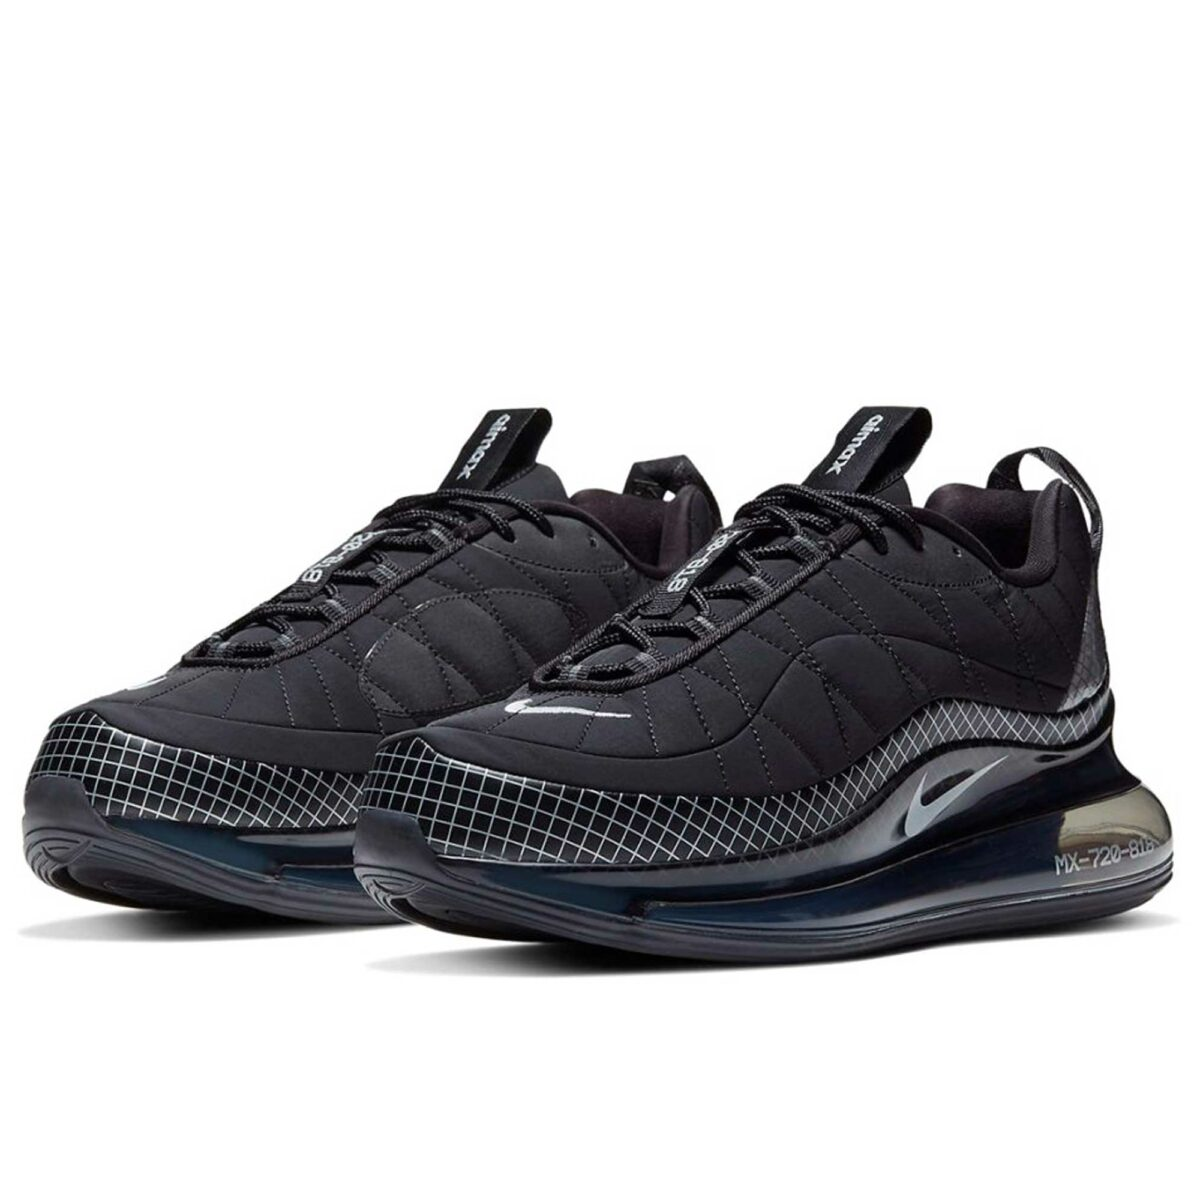 nike air max 720-818 black CI3871_001 купить